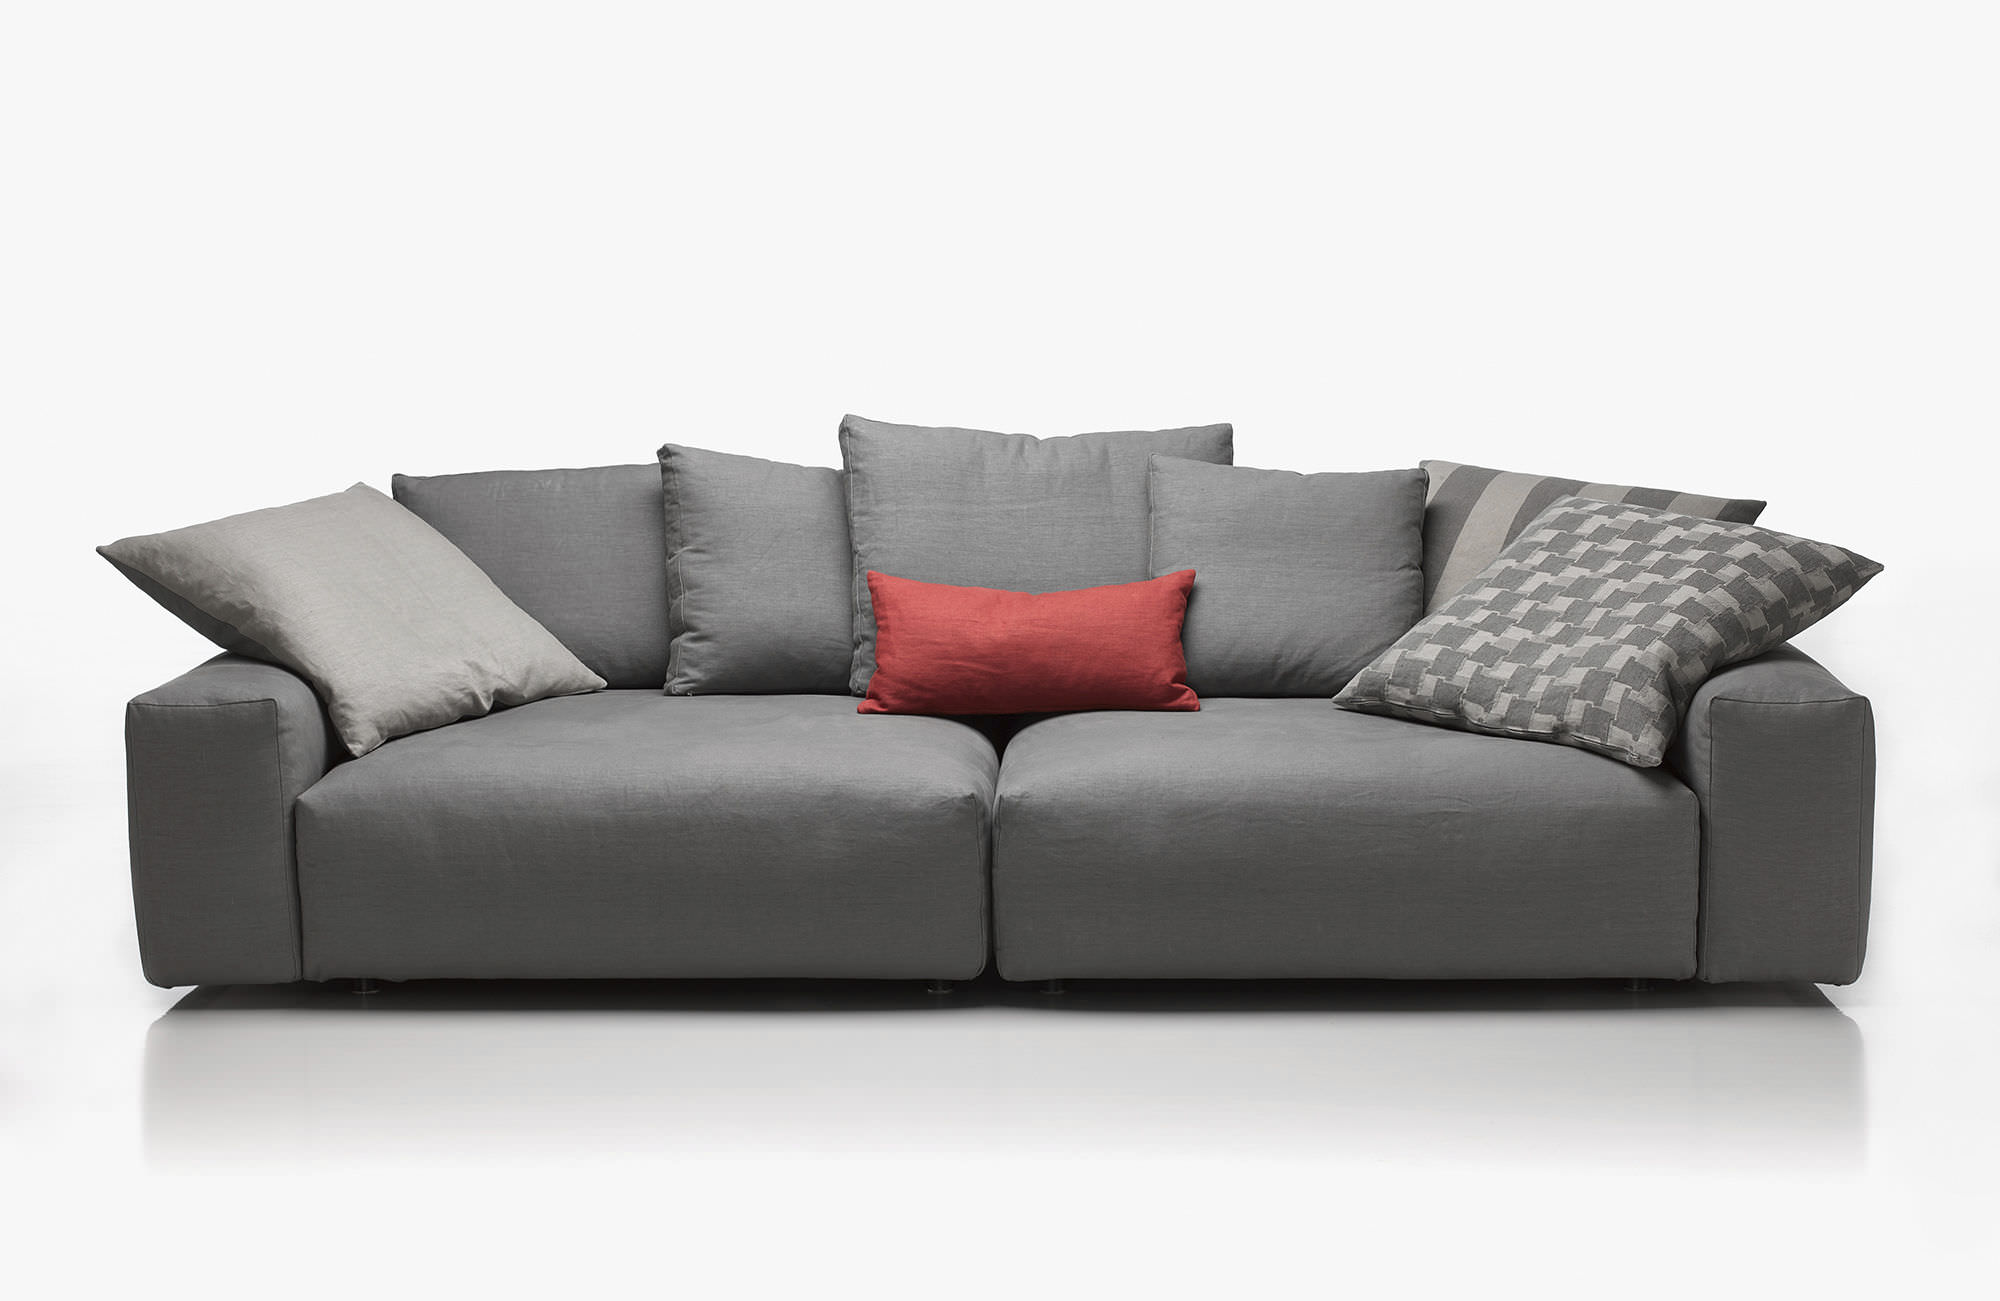 Get the best look for your house with contemporary sofa